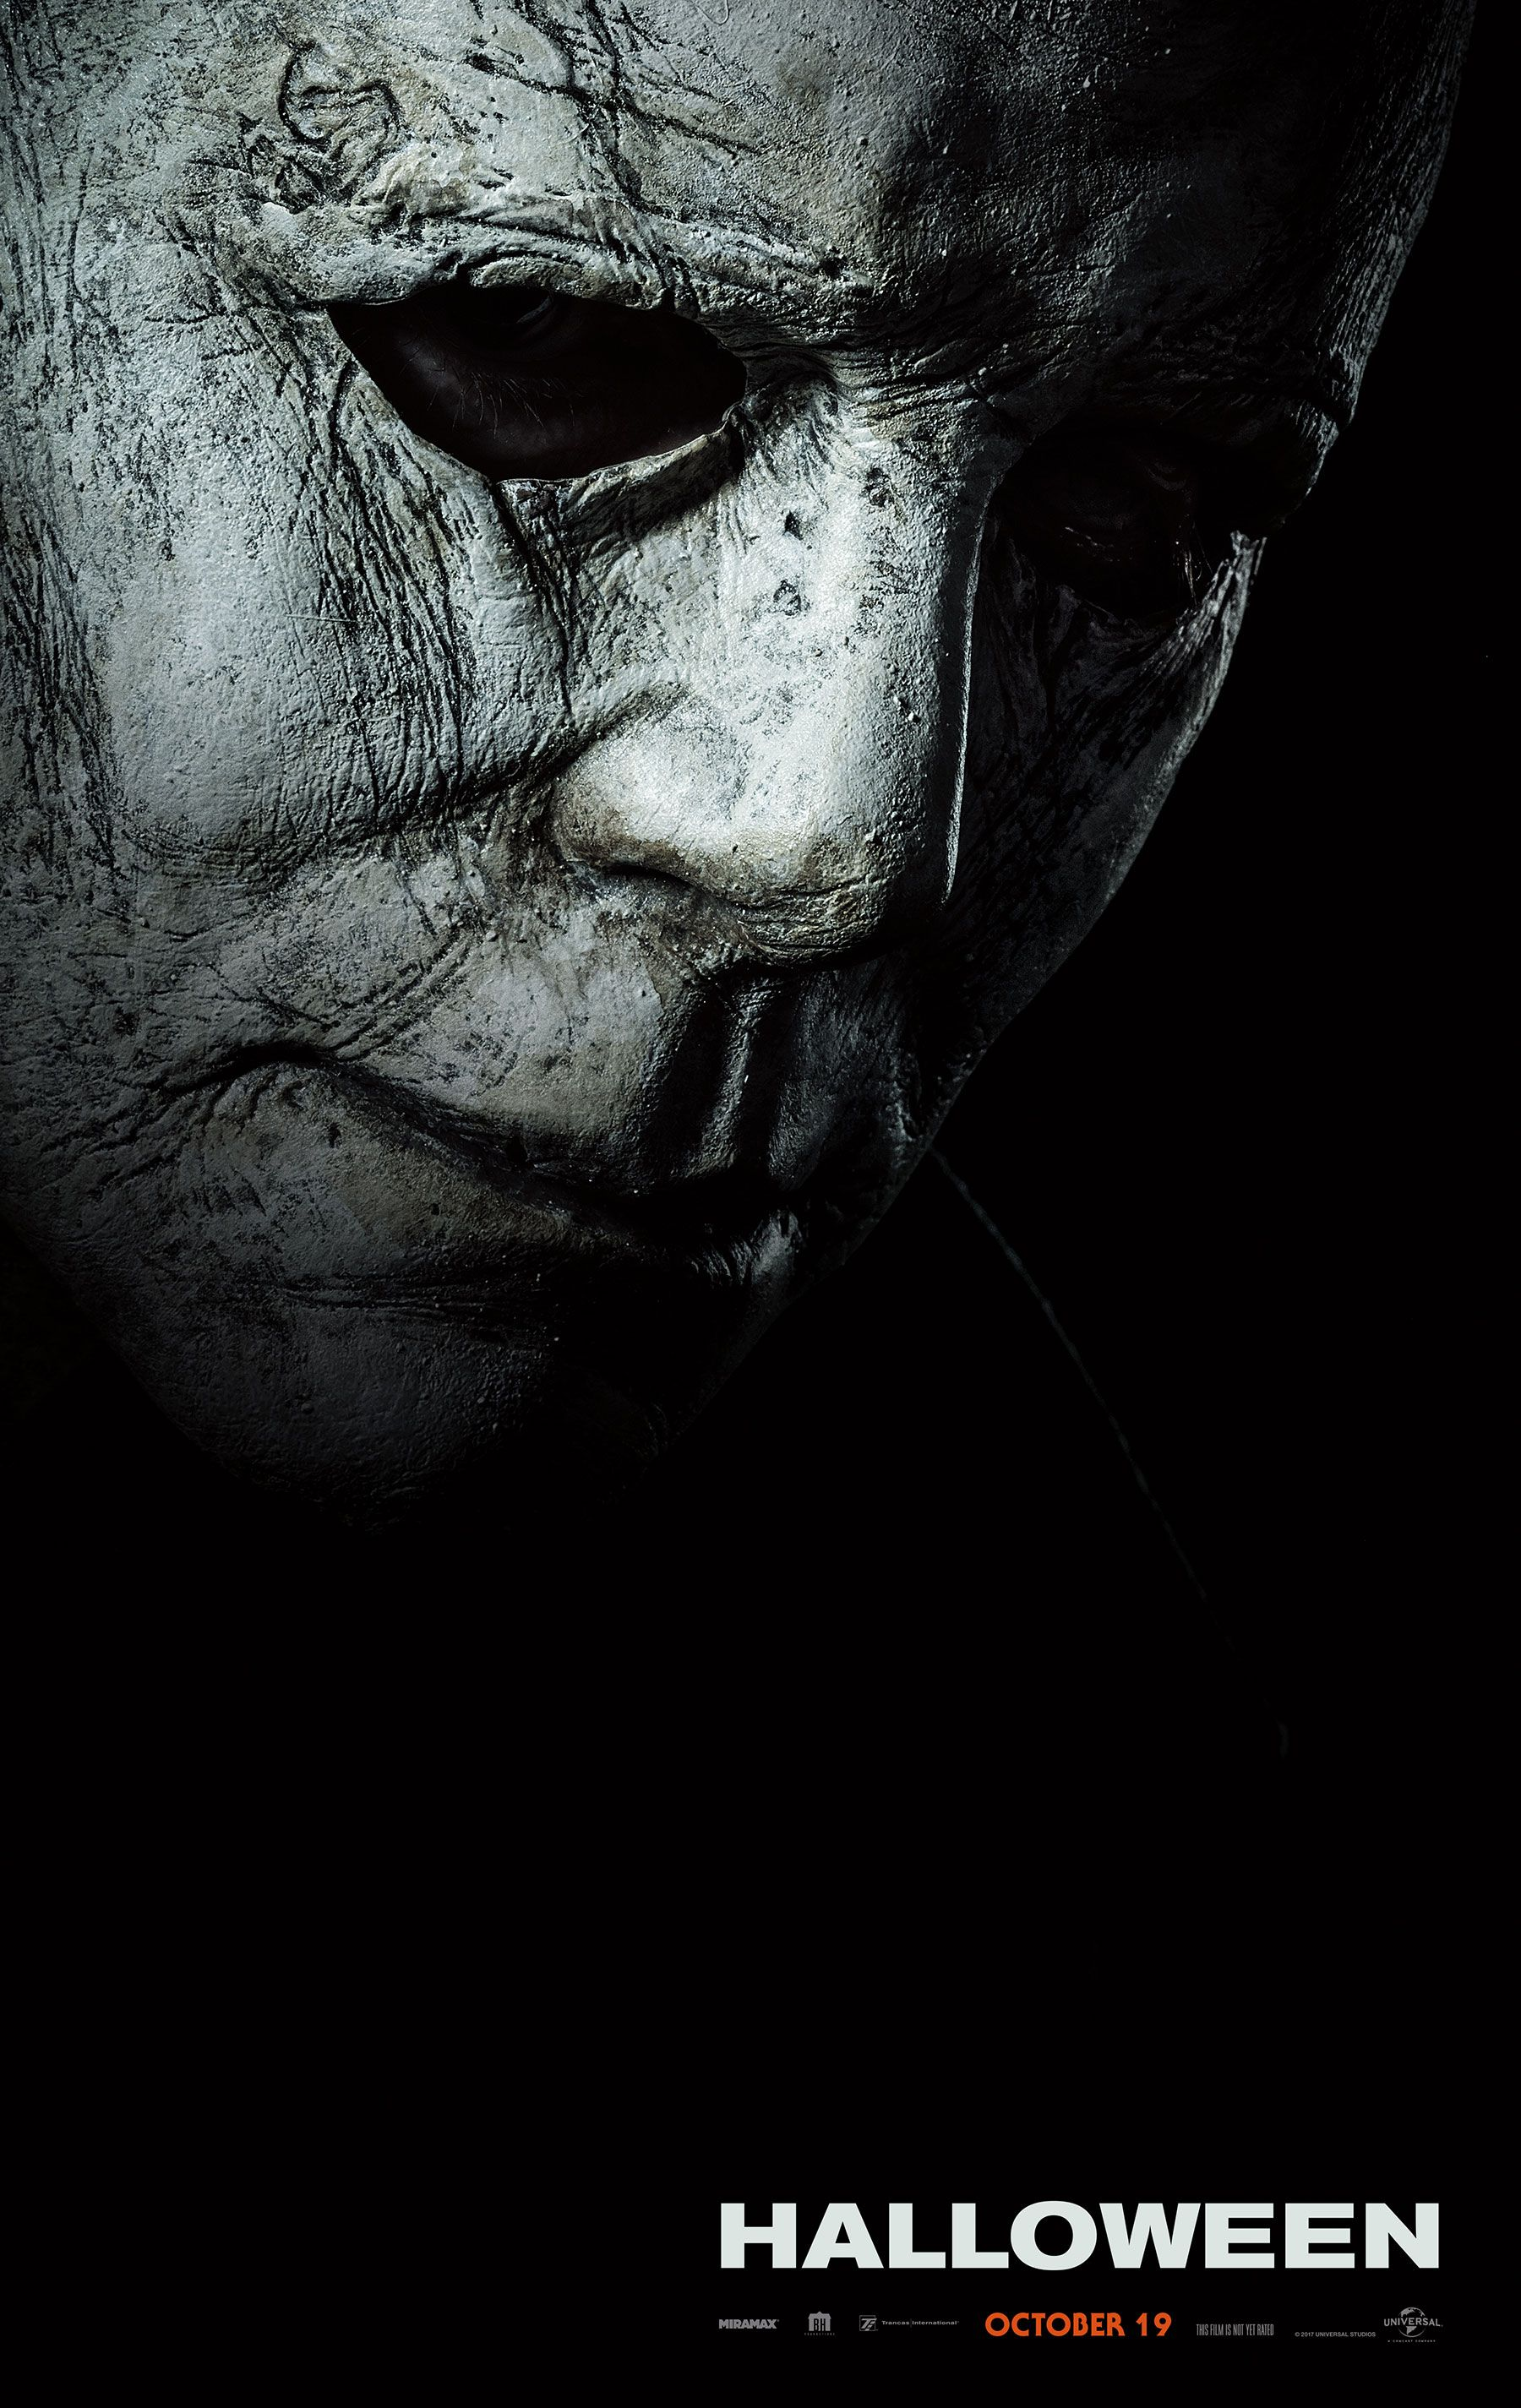 Michael Myers shows his face in first 'Halloween' poster